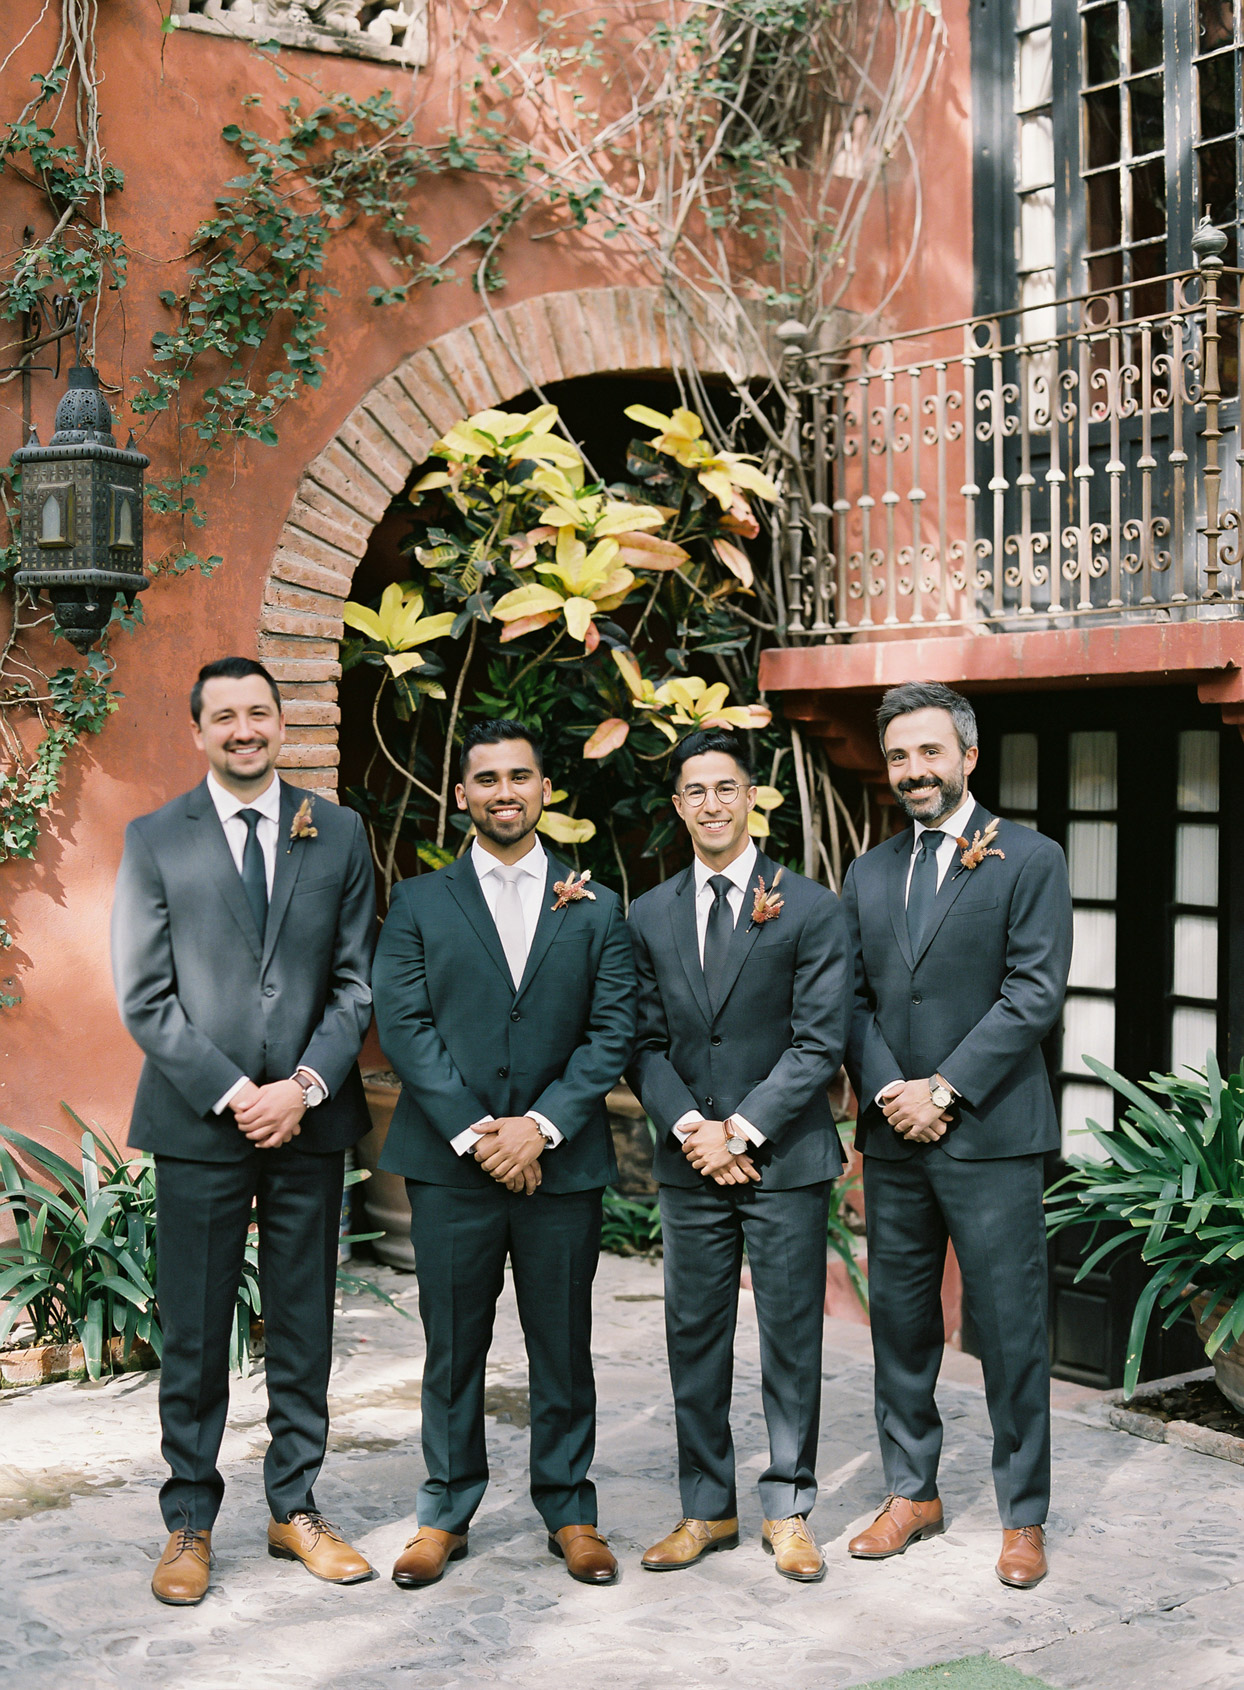 wedding groomsmen in charcoal suits